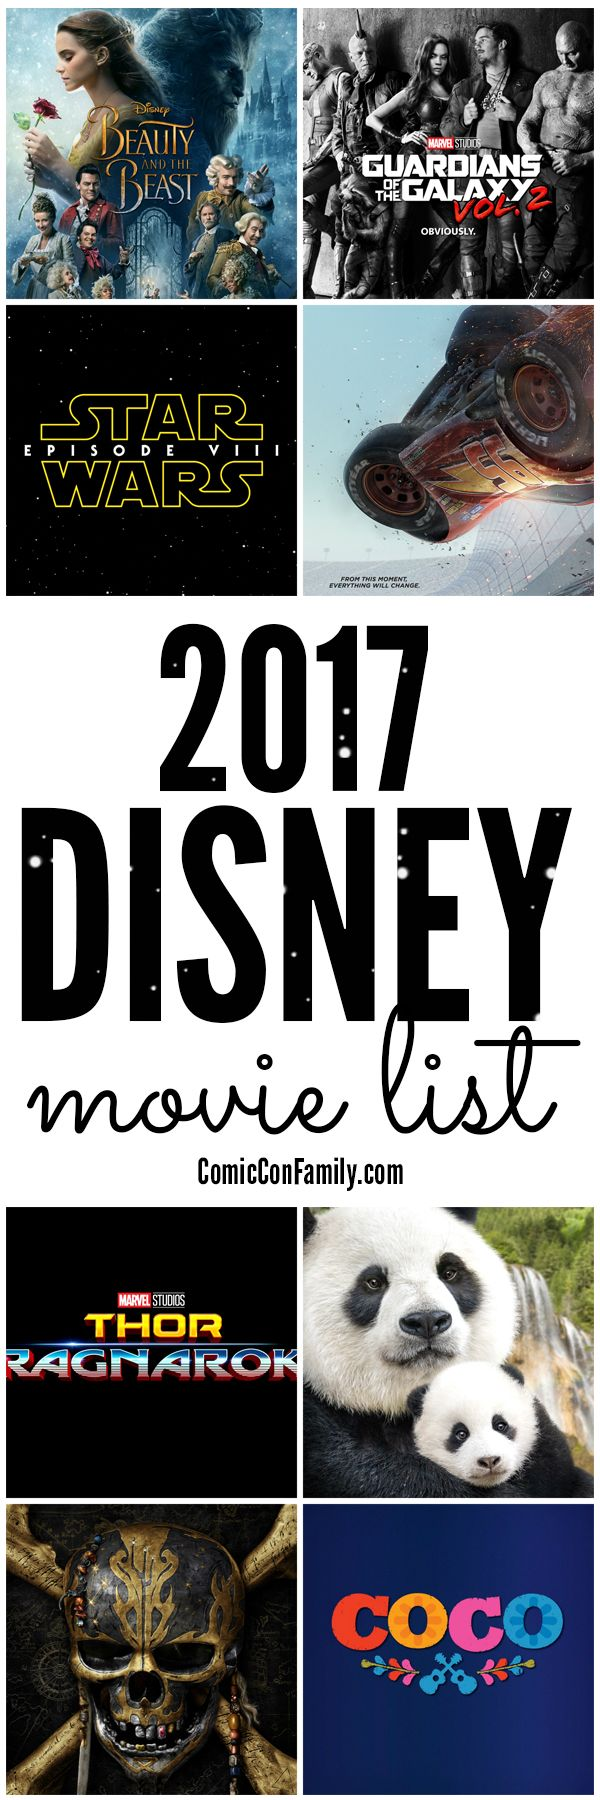 Disney movie release dates in Perth